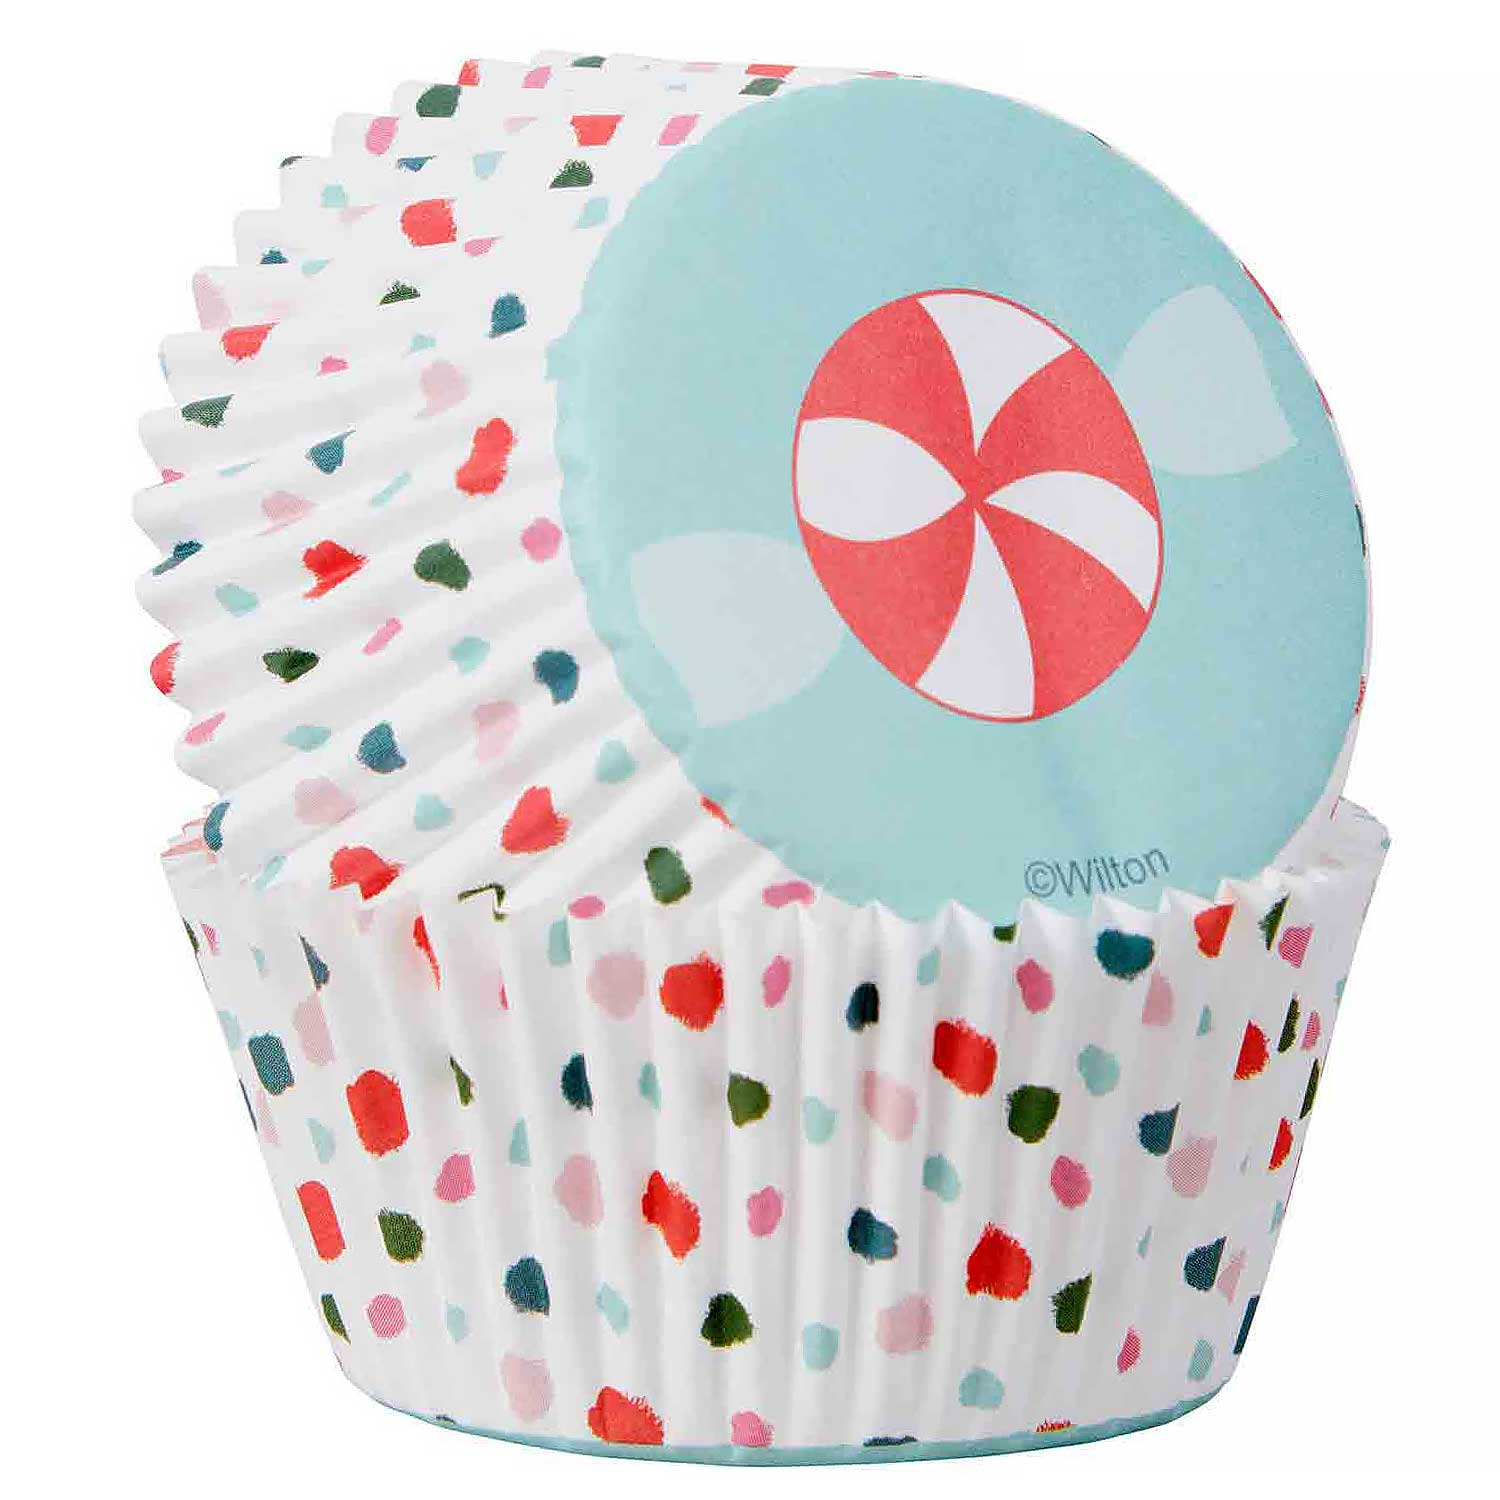 Candy Swirl Standard Baking Cups